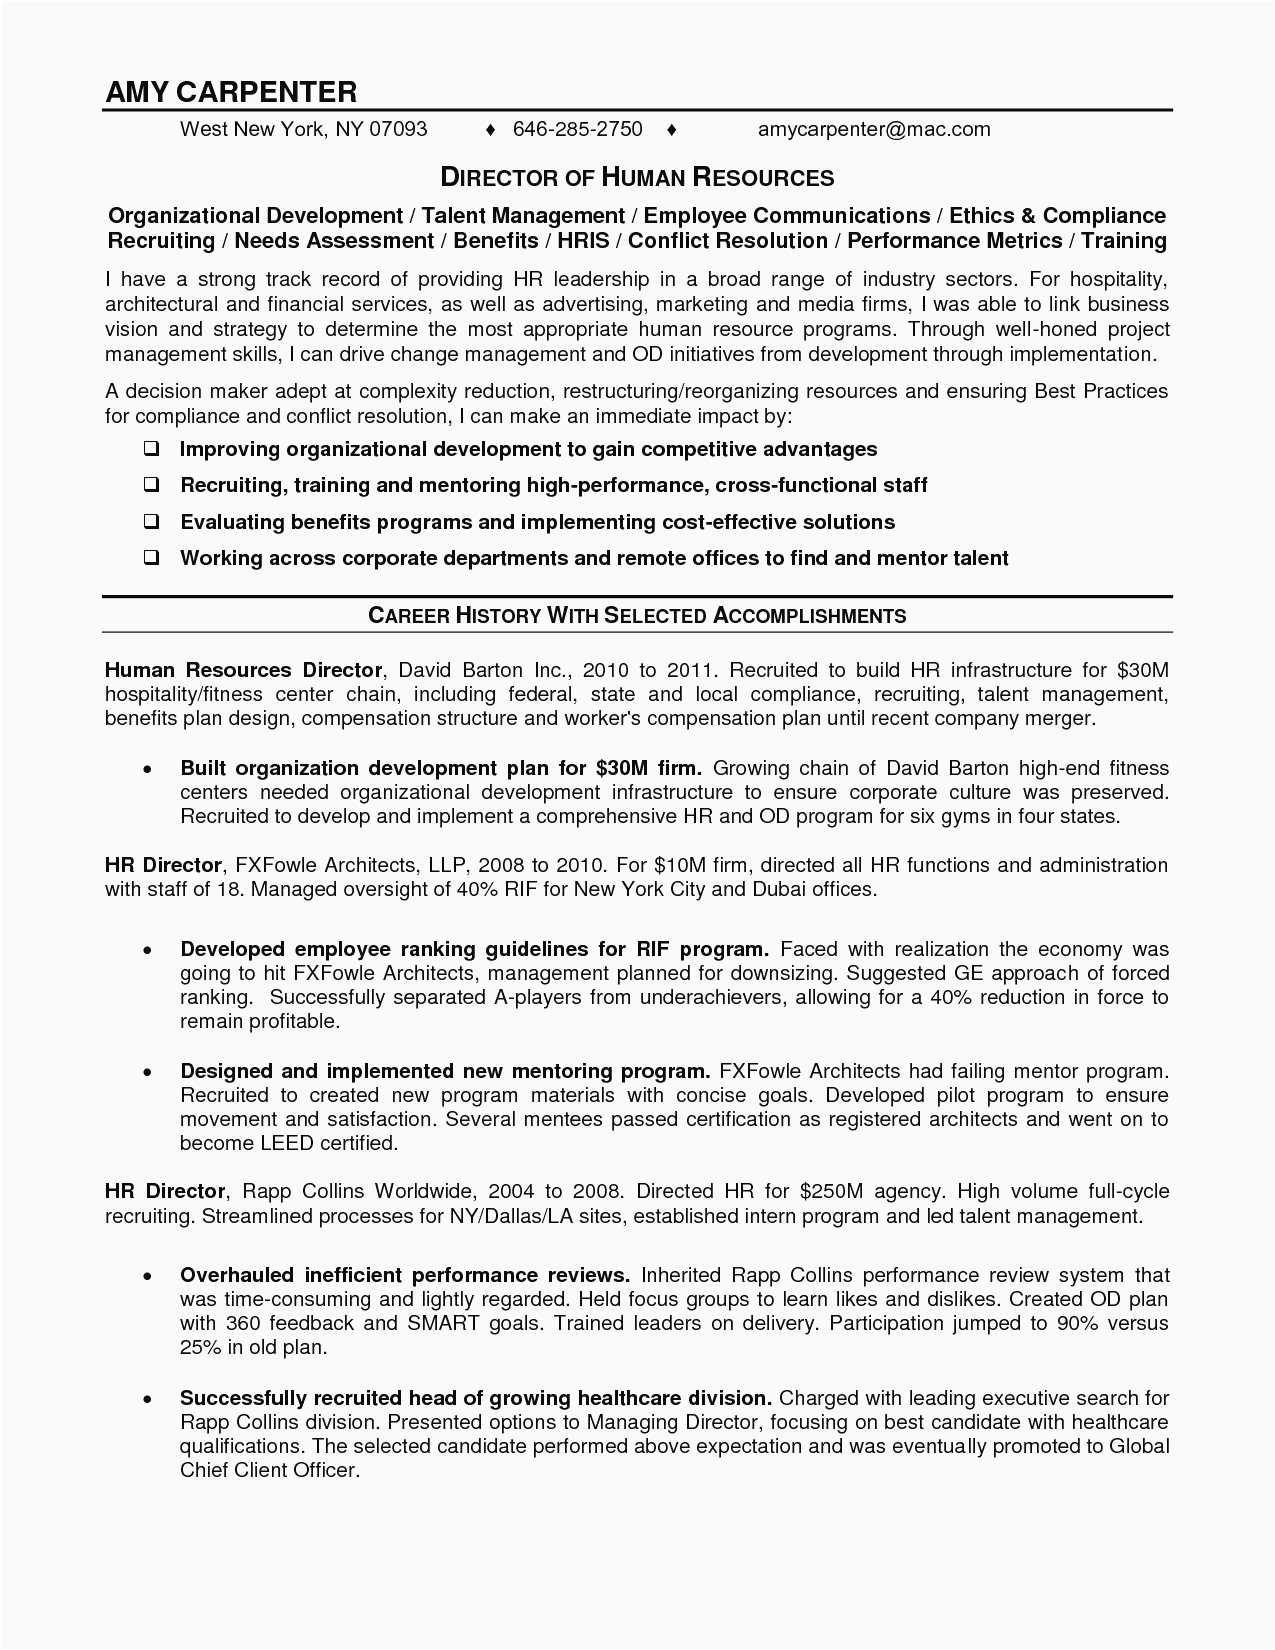 Contract Termination Letter Template Free